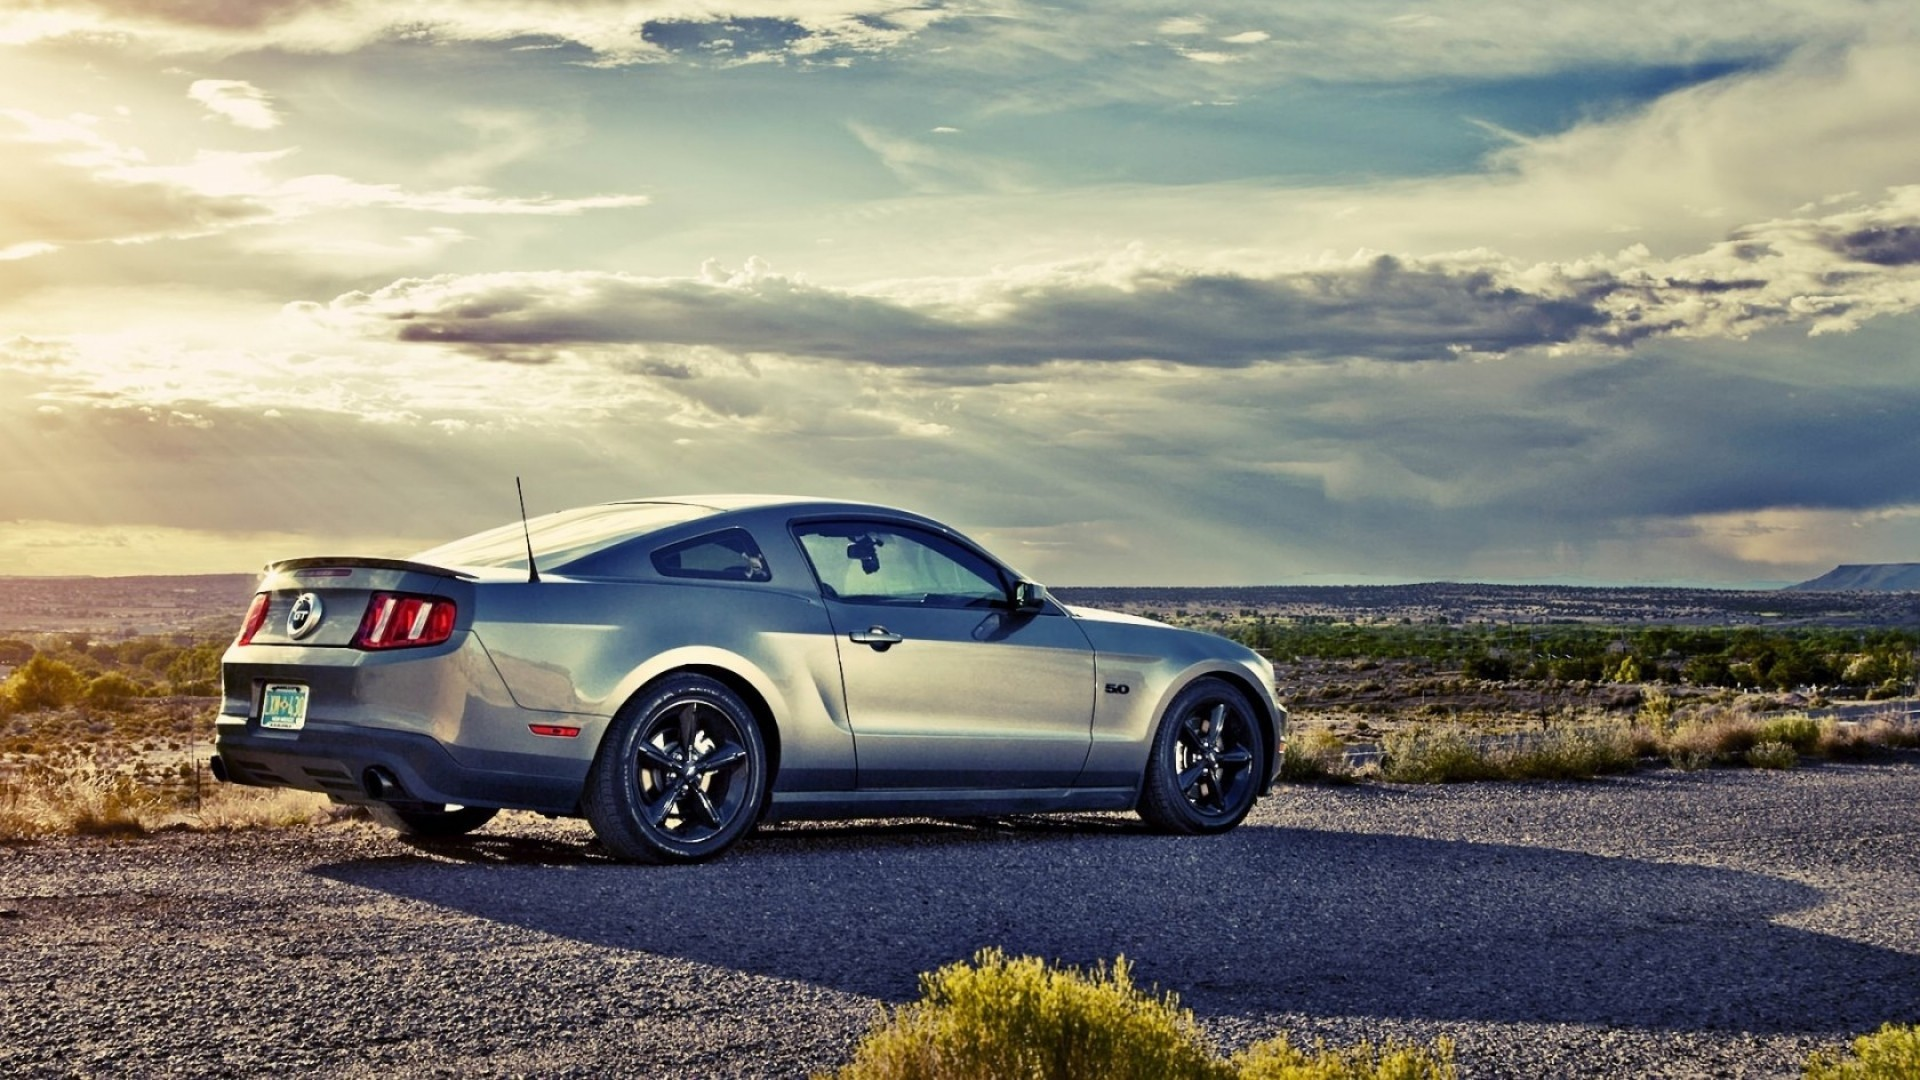 ford mustang wallpaper ·①